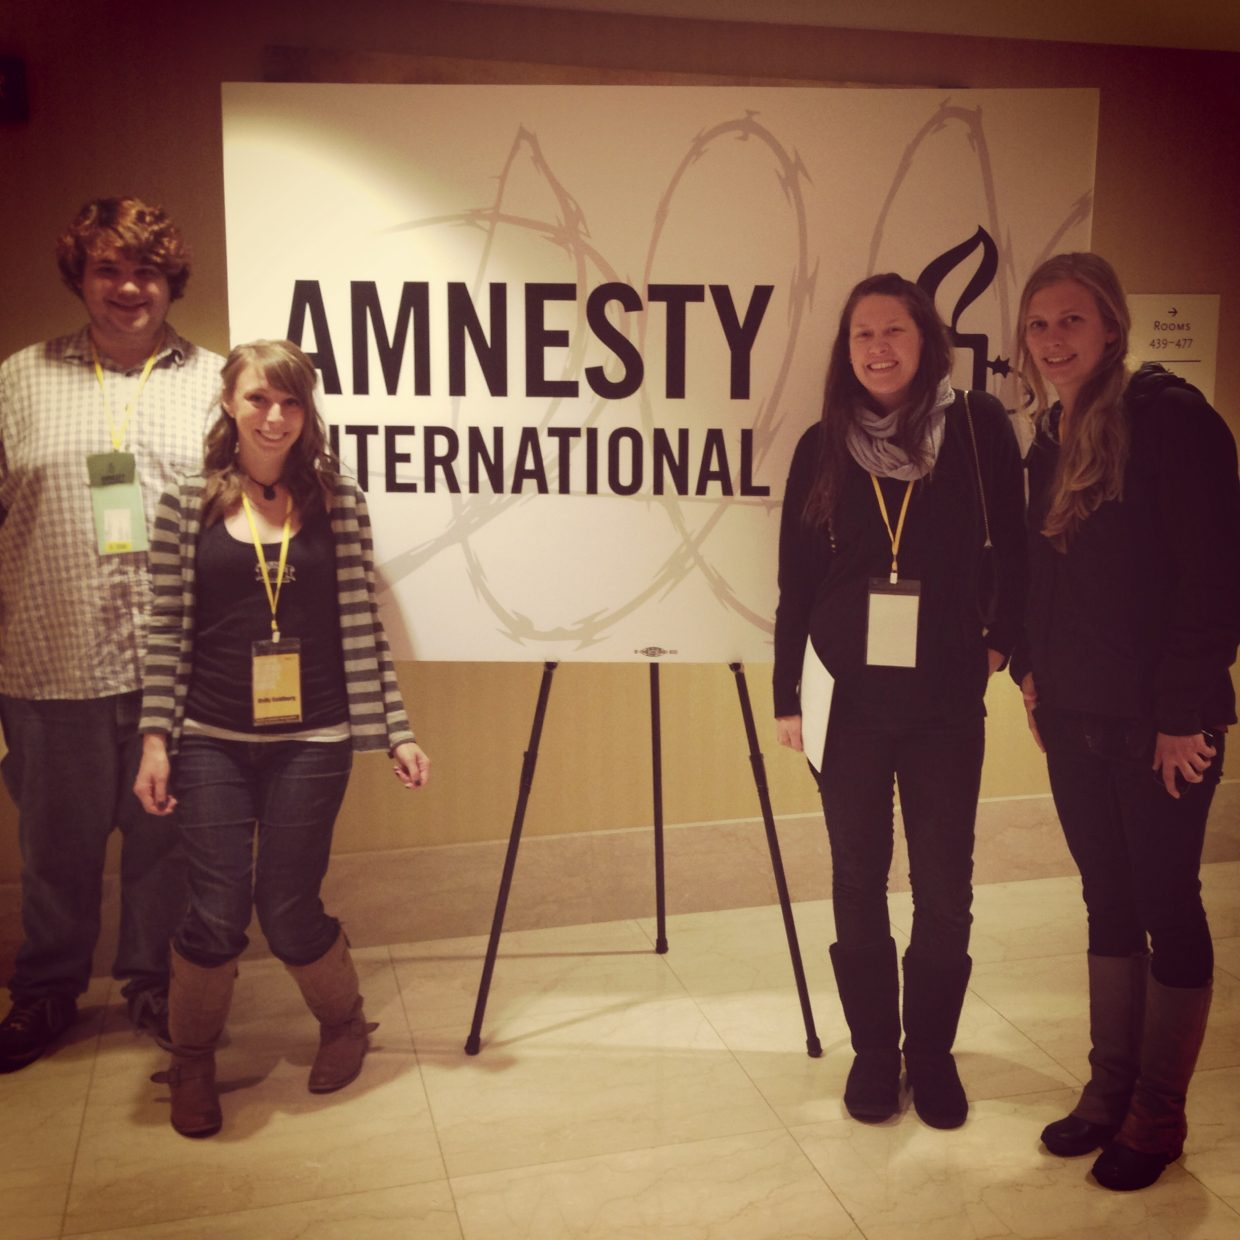 Jared Sumner, left, Molly Goldberg, Catie Jasper and Leila Wise recently attended an Amnesty International event in Chicago where Edward Snowden and Glenn Greenwald spoke via Skype. Goldberg is helping host a benefit for Amnesty International on Friday at Old Town Pub.